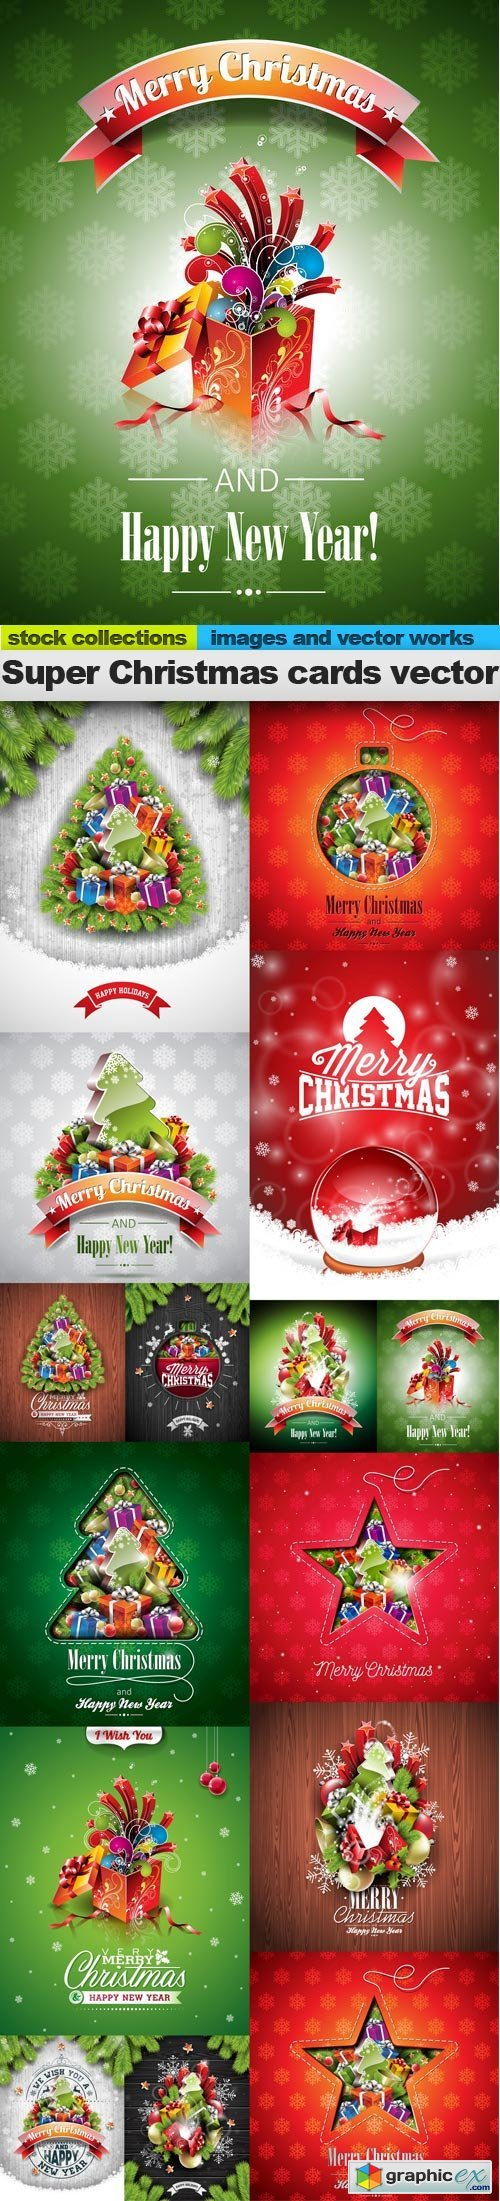 Super Christmas cards vector, 15 x EPS